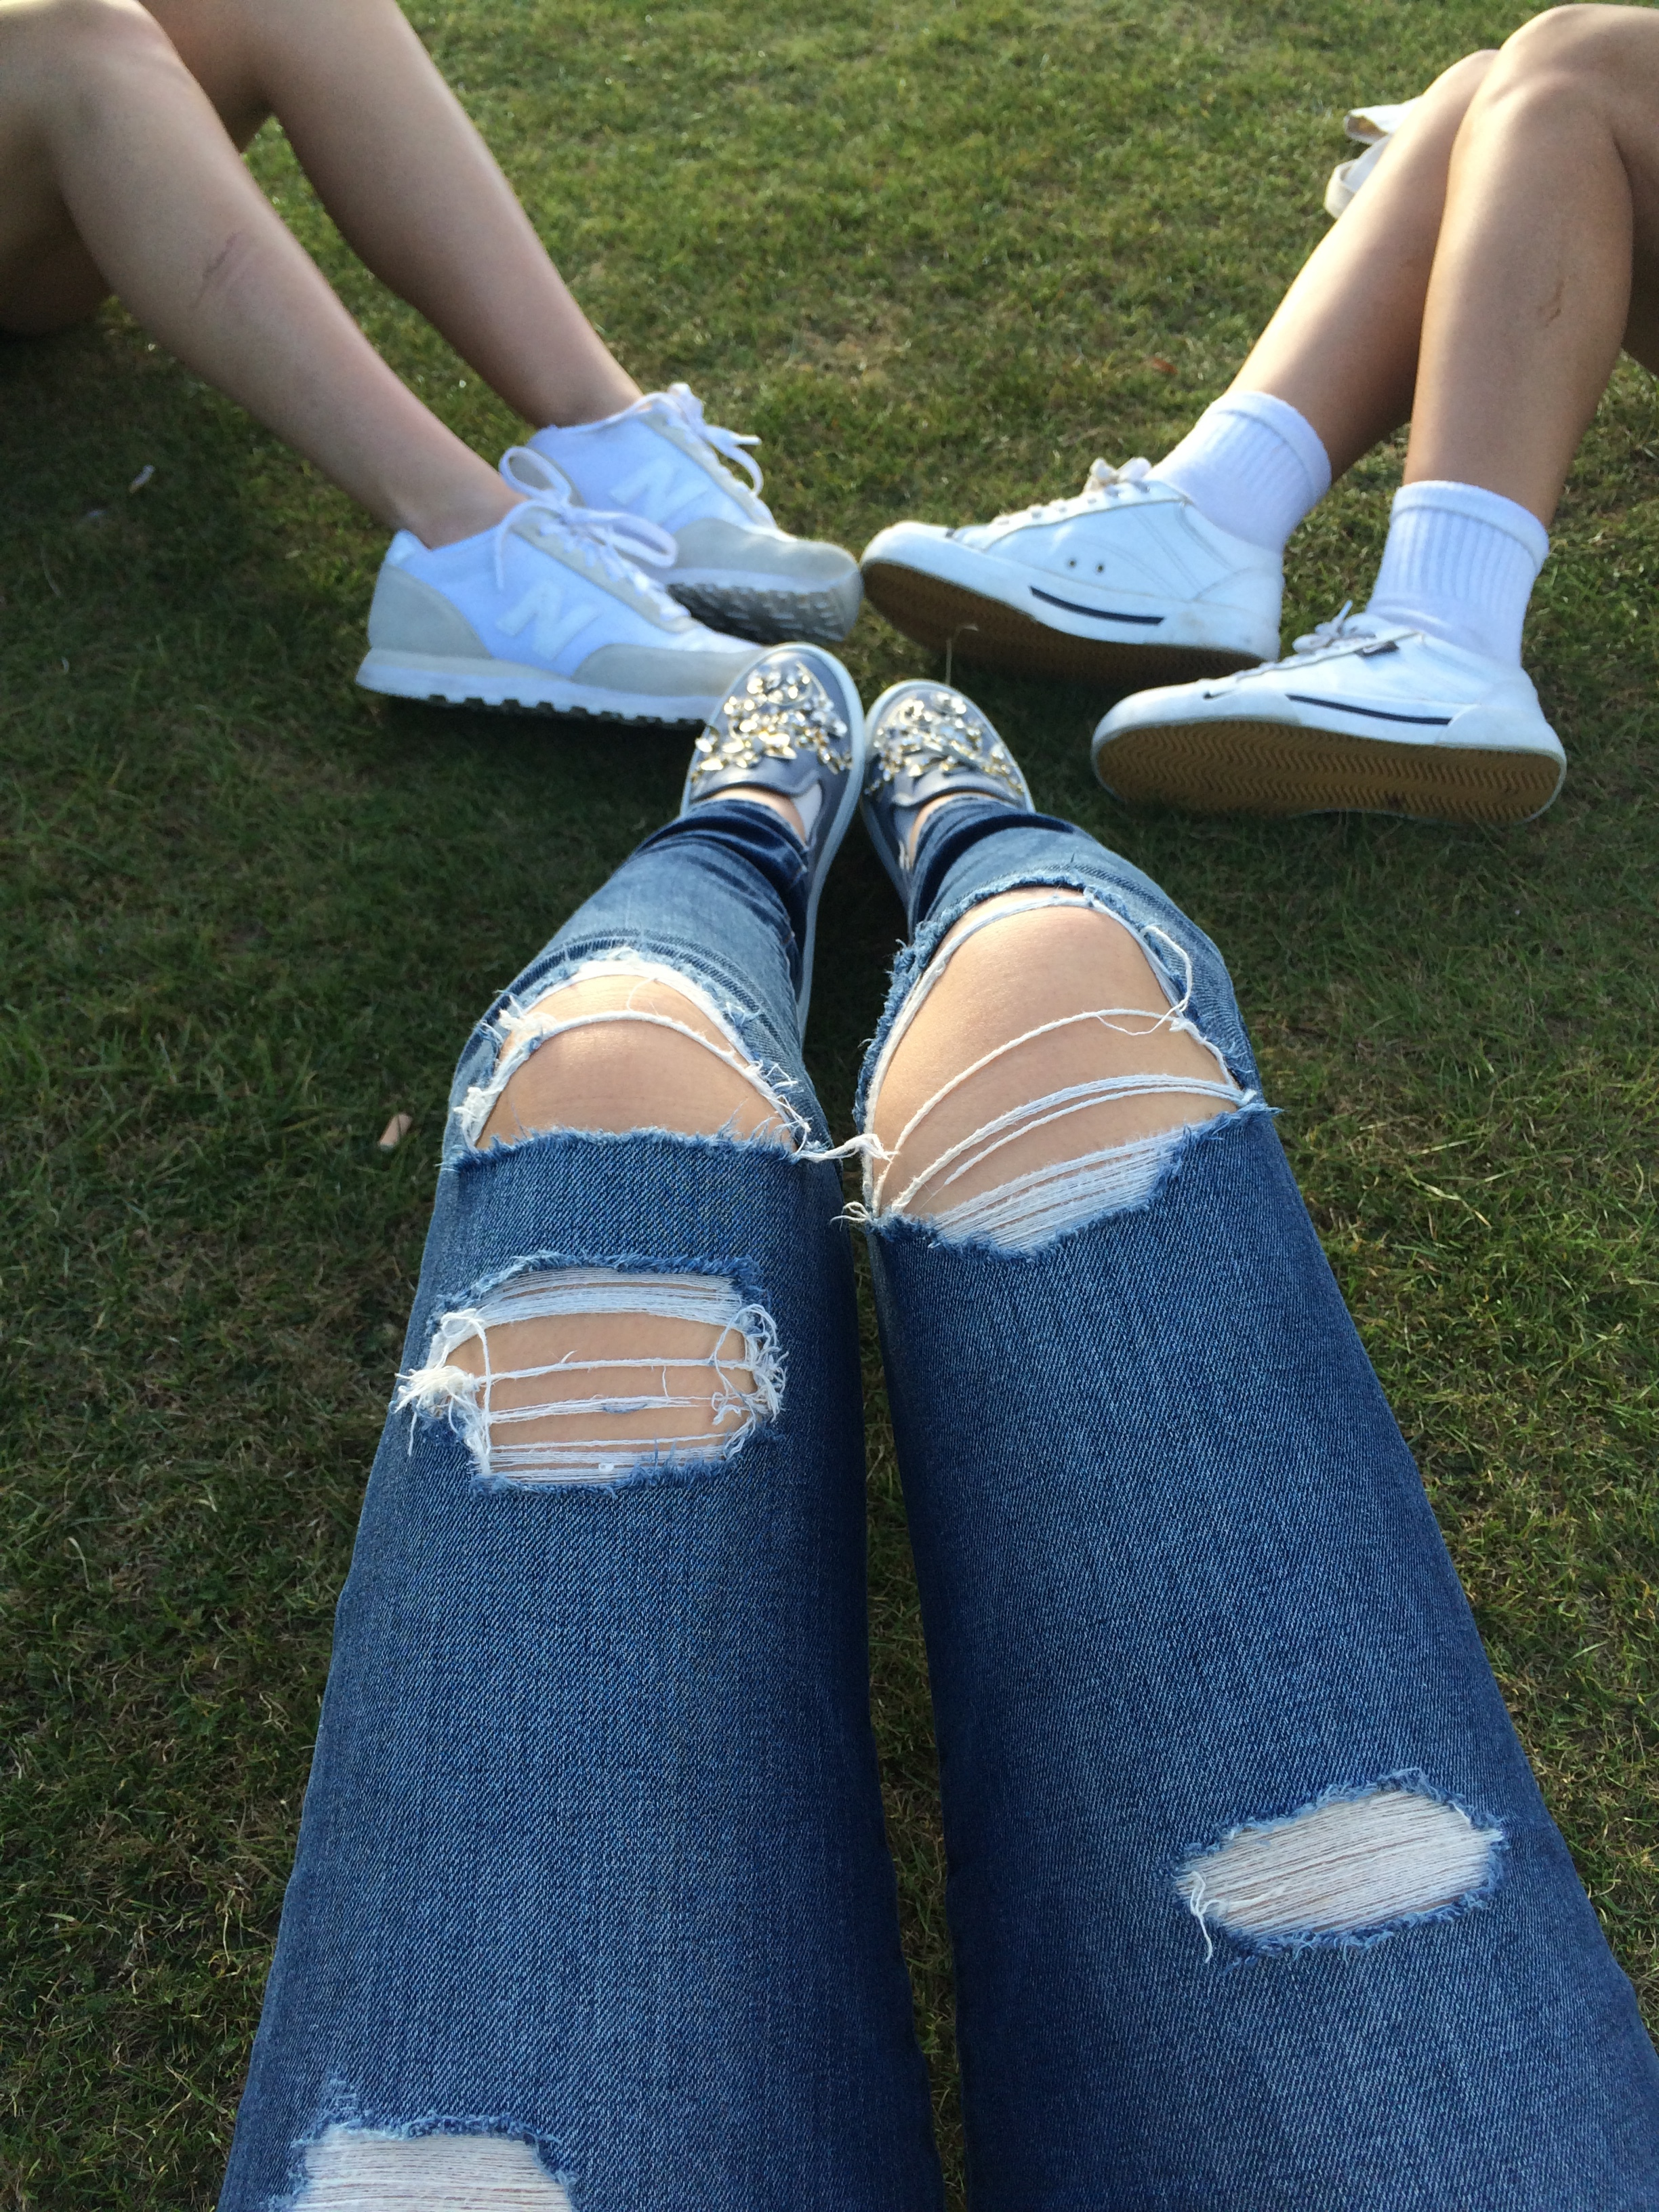 This picture was taken on a gorgeous sunny day at a park with my friends. My jeans are Joe's and my shoes are AGL.